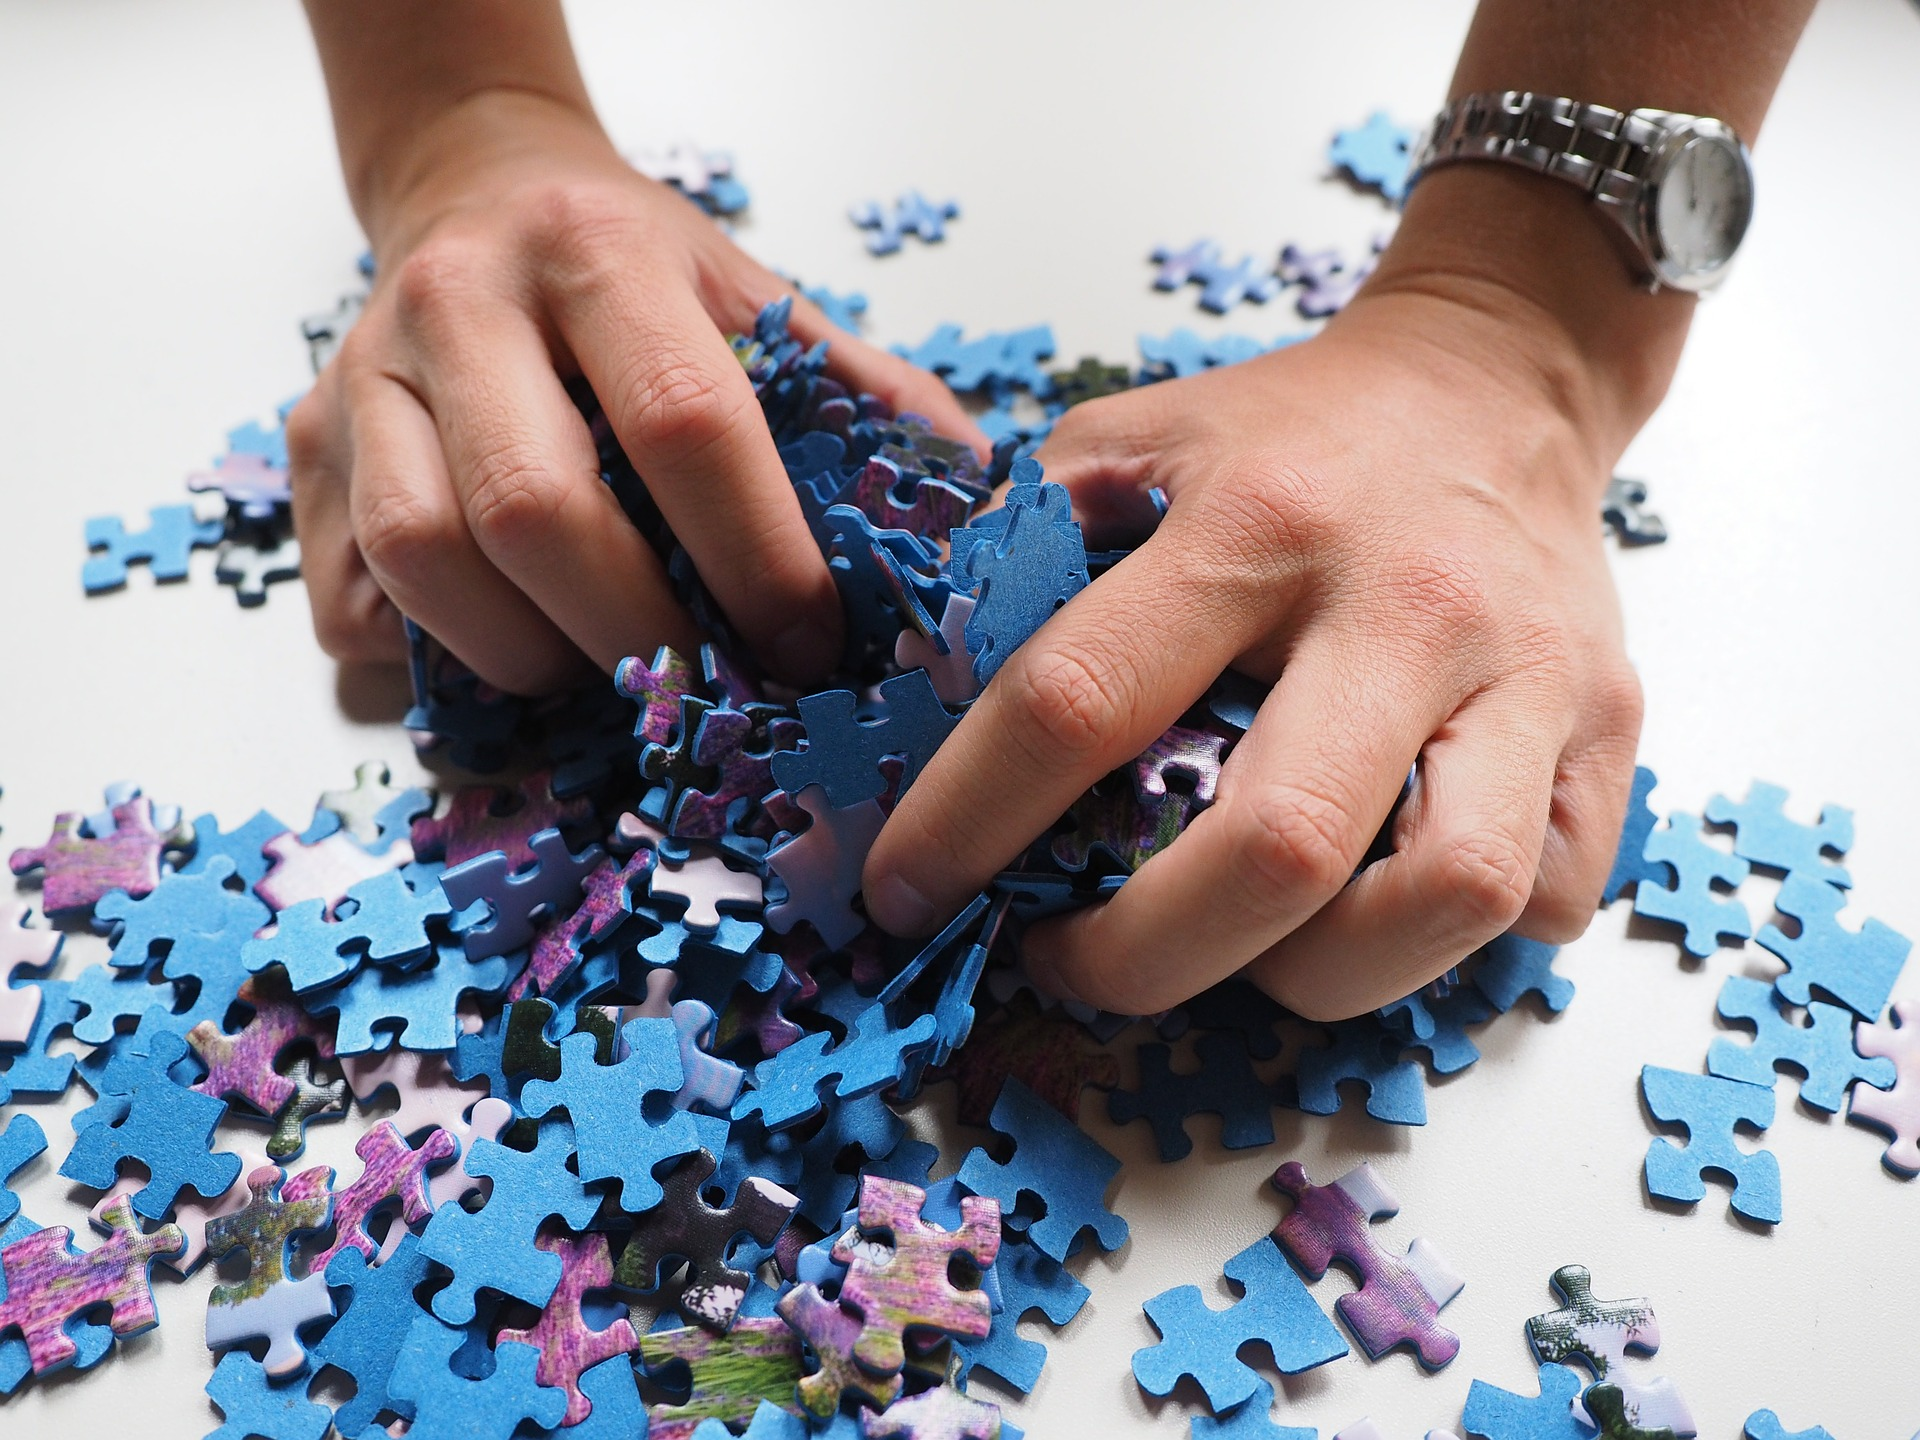 pieces-of-the-puzzle-592798_1920